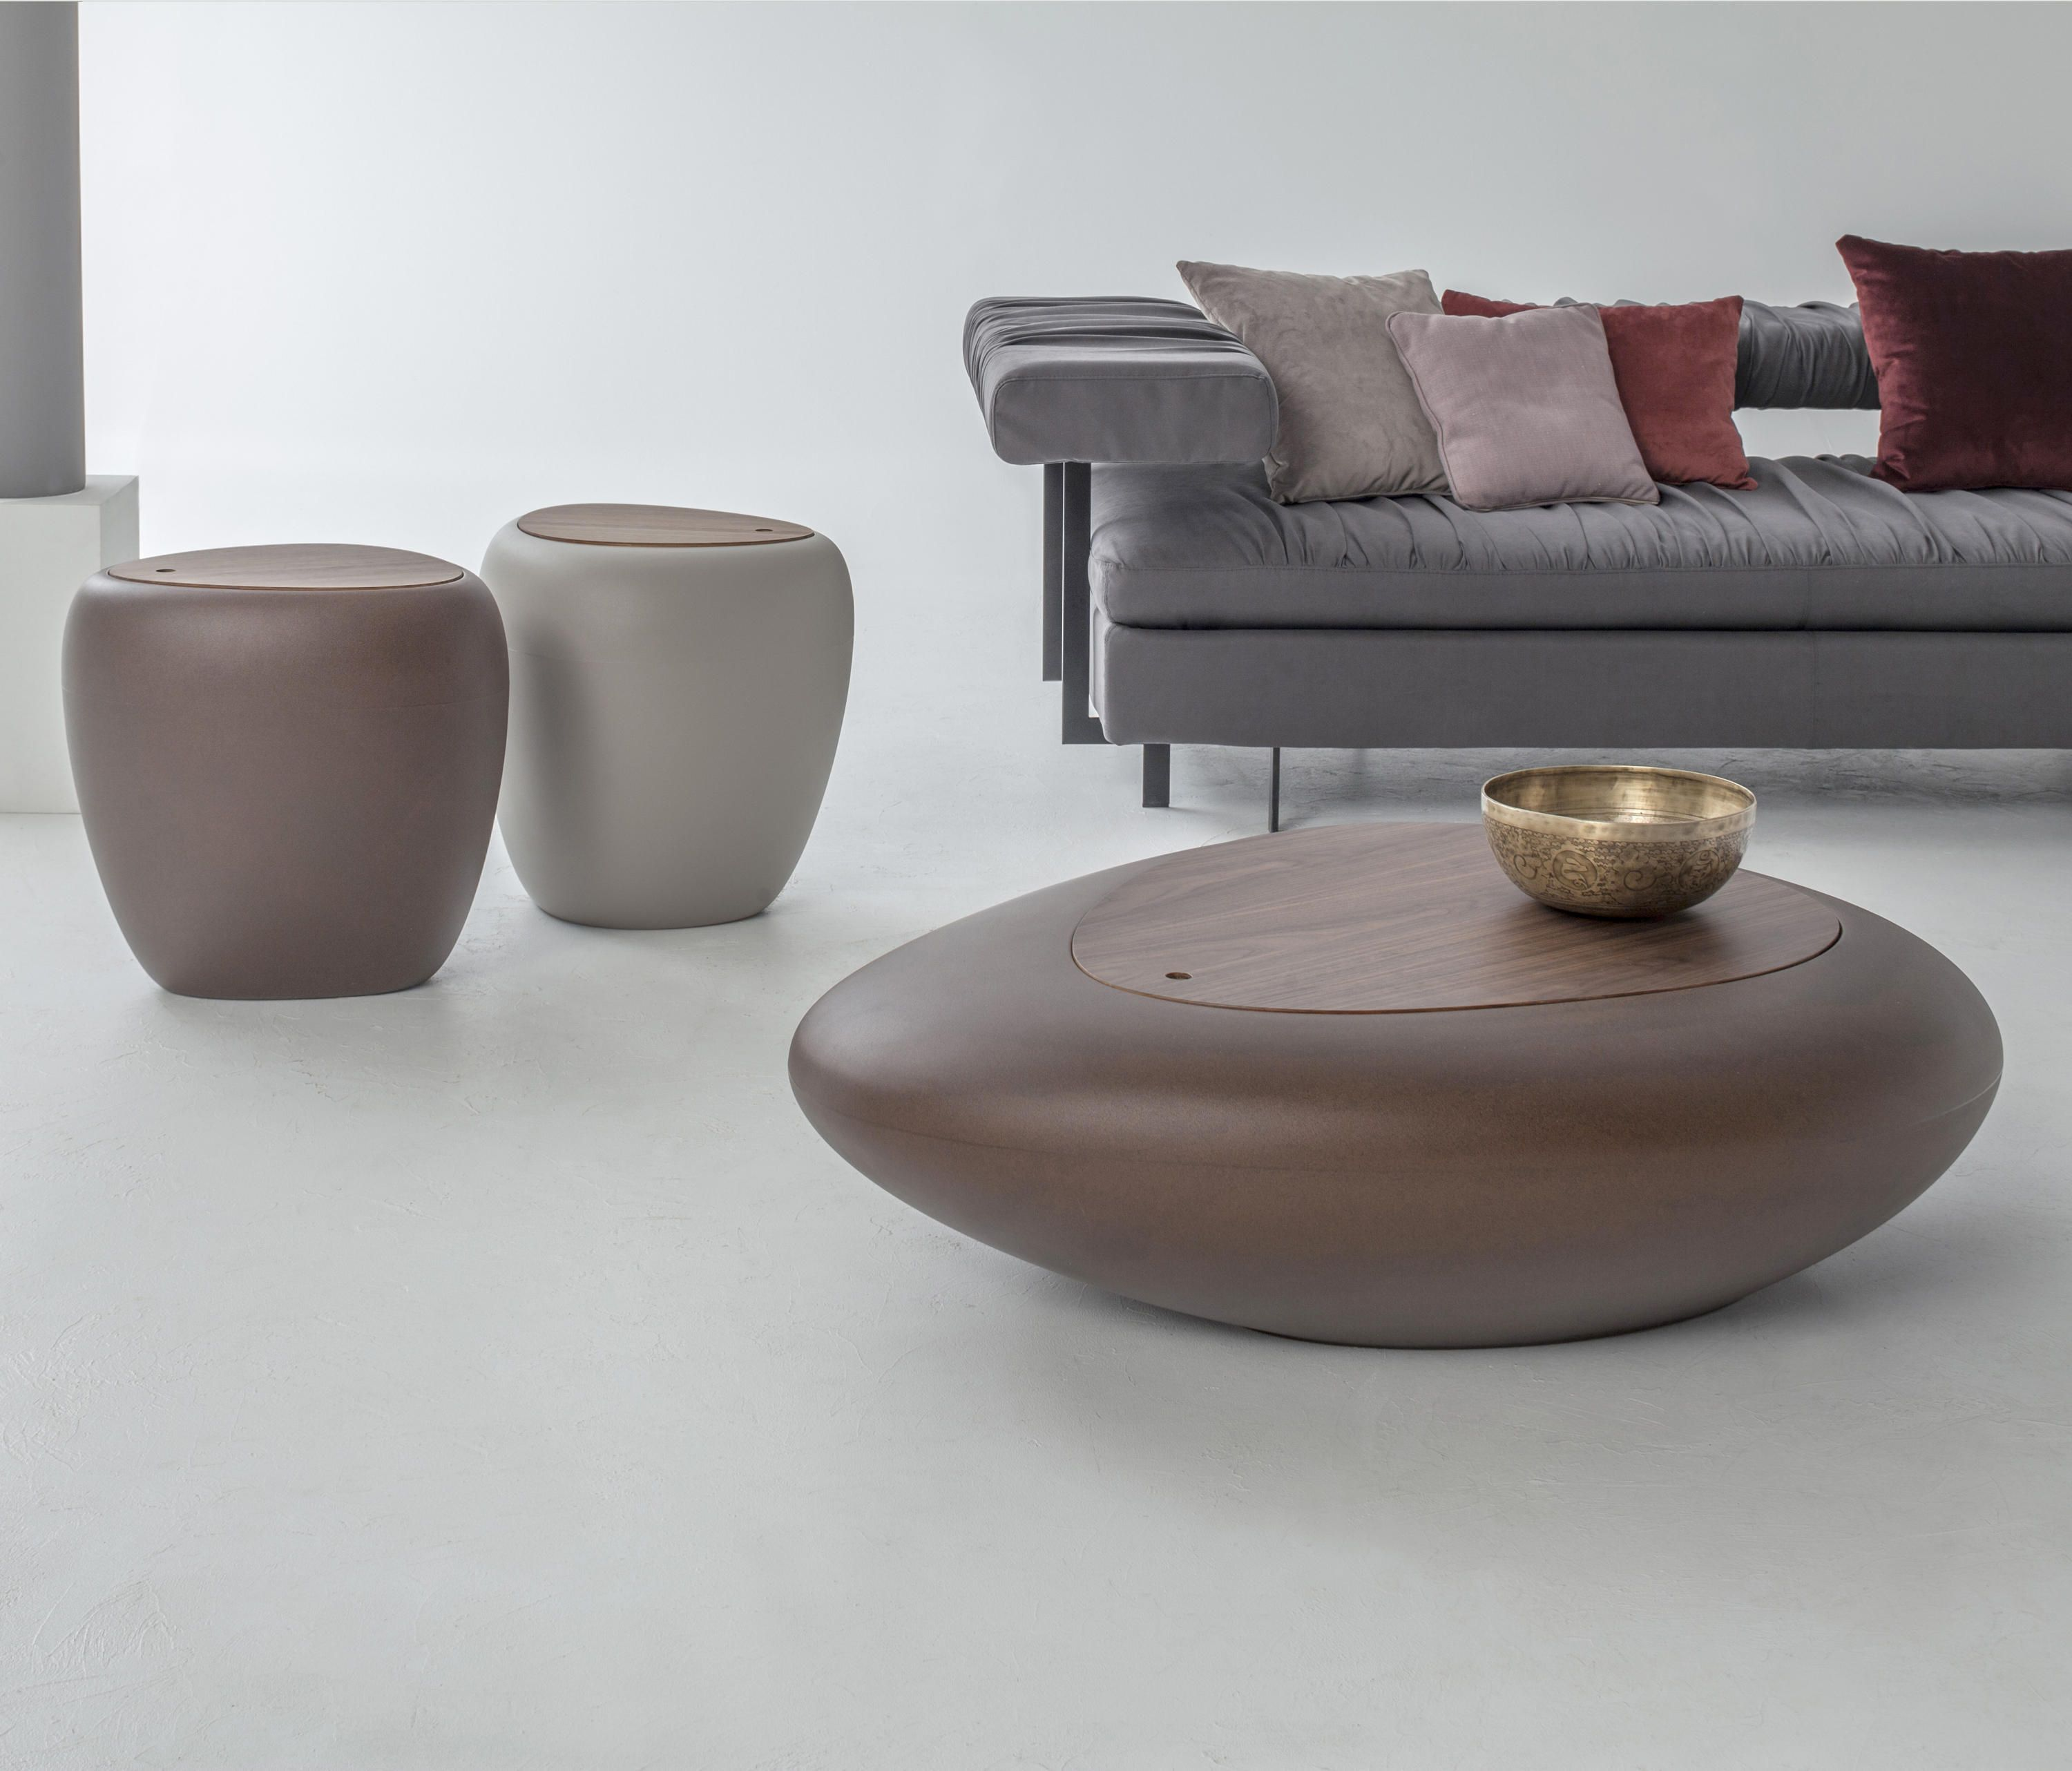 Kos Designer Coffee Tables From Tonin Casa All Information High Resolution Images Cads Catalogues Cont Coffee Table Coffe Table Coffee Table Design [ 2564 x 3000 Pixel ]